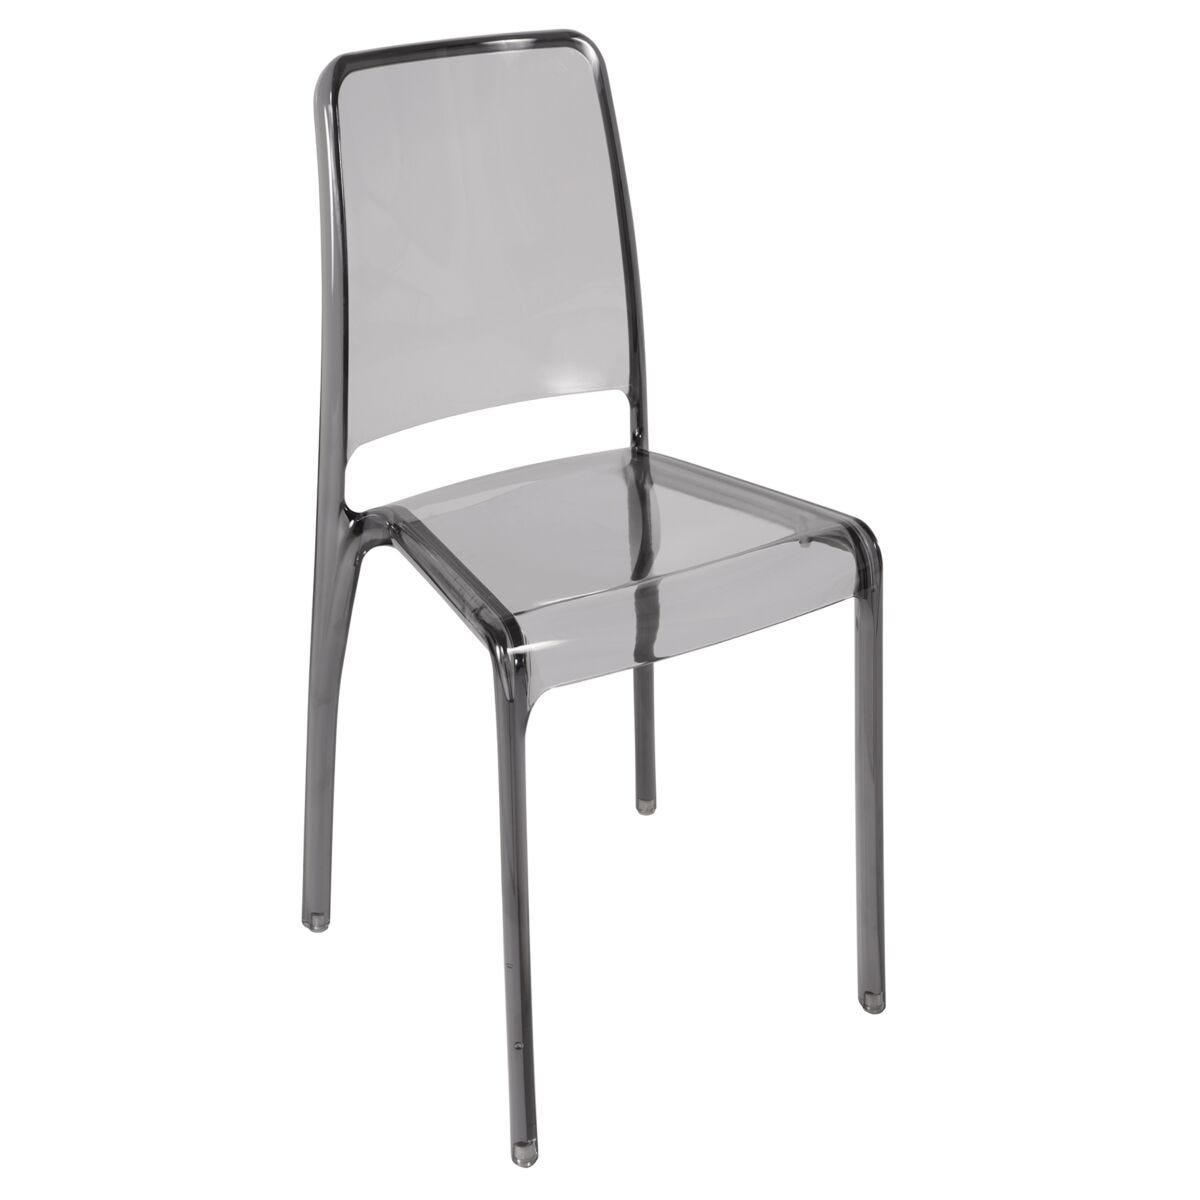 Teknik Office Clarity Breakout Chair Pack of 4